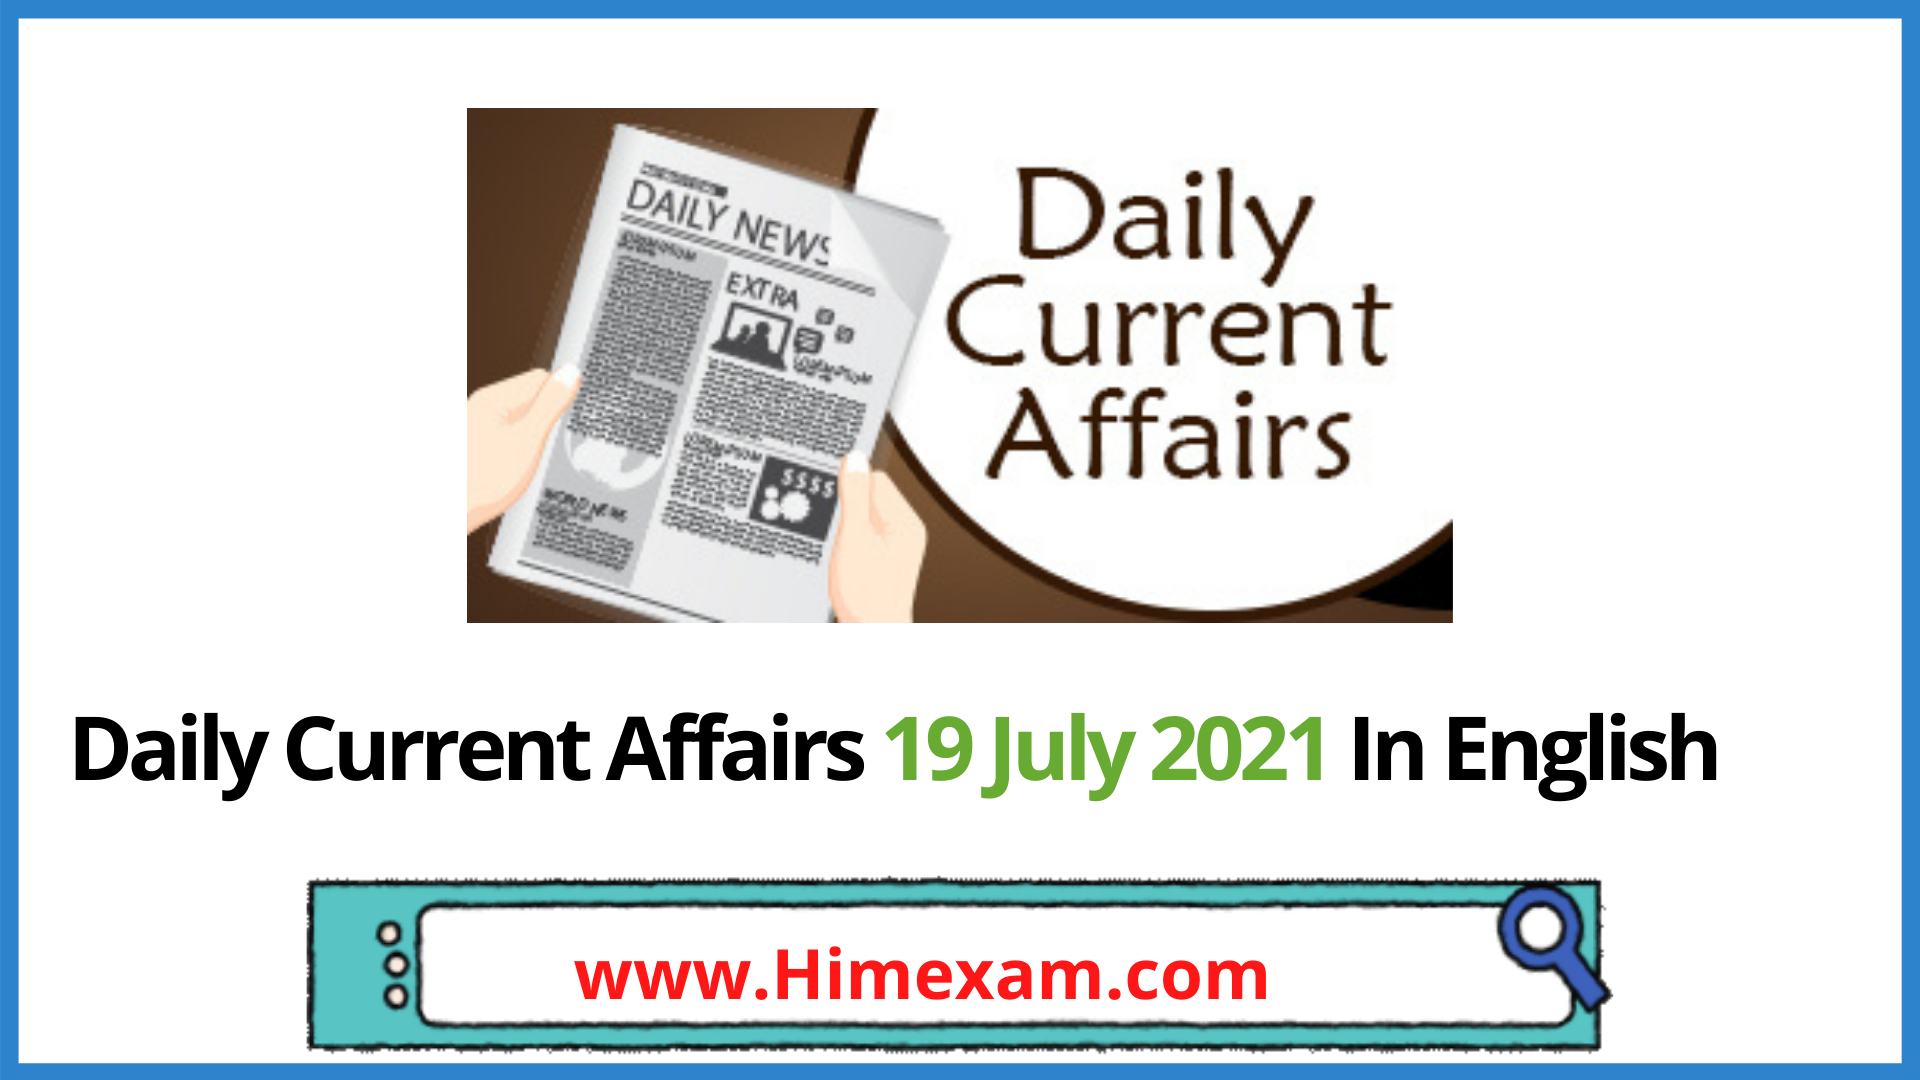 Daily Current Affairs 19 July 2021 In English